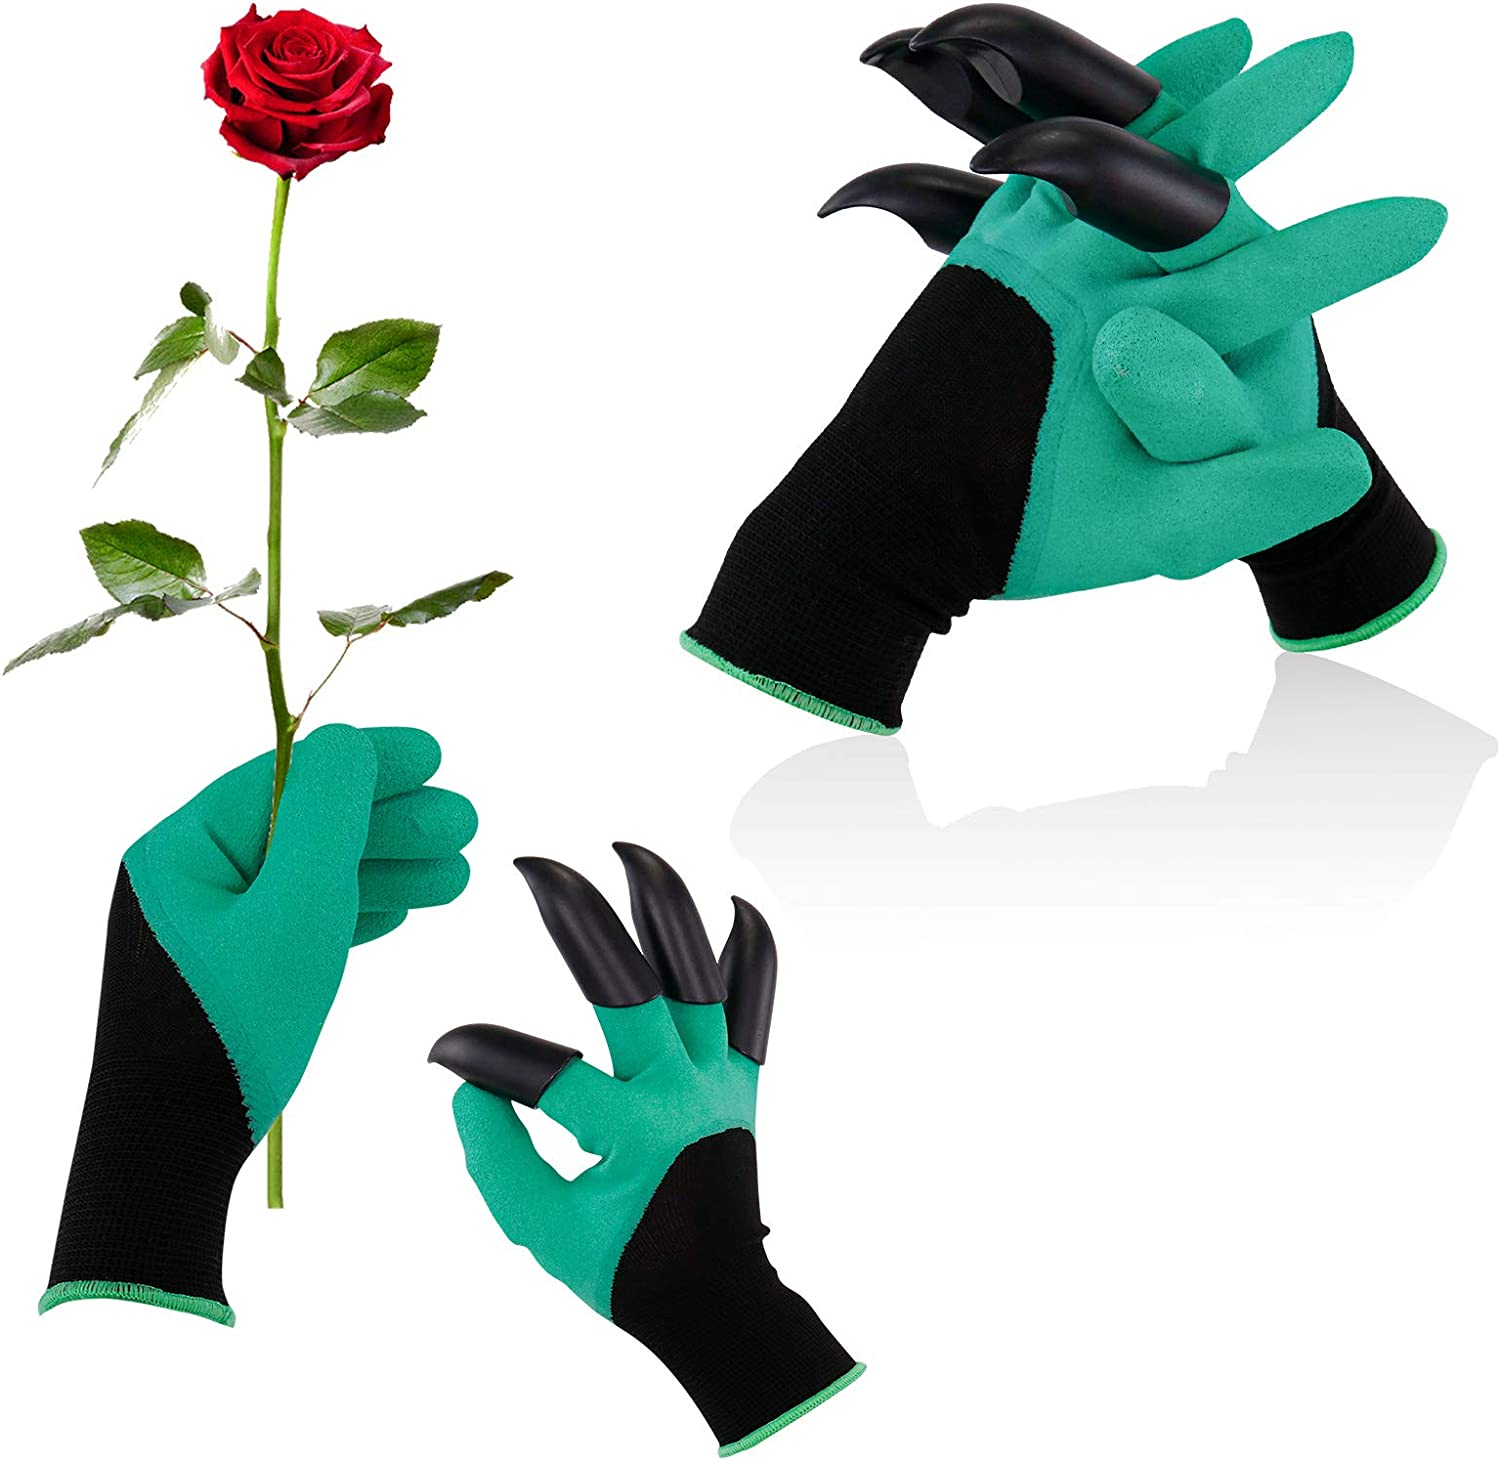 Garden Genie Gloves with Claws, Gardening Gloves2 Pairs for Digging and Planting Latex Coating Waterproof Breathable Outdoor Gardening Tools for Women and Men (Green)